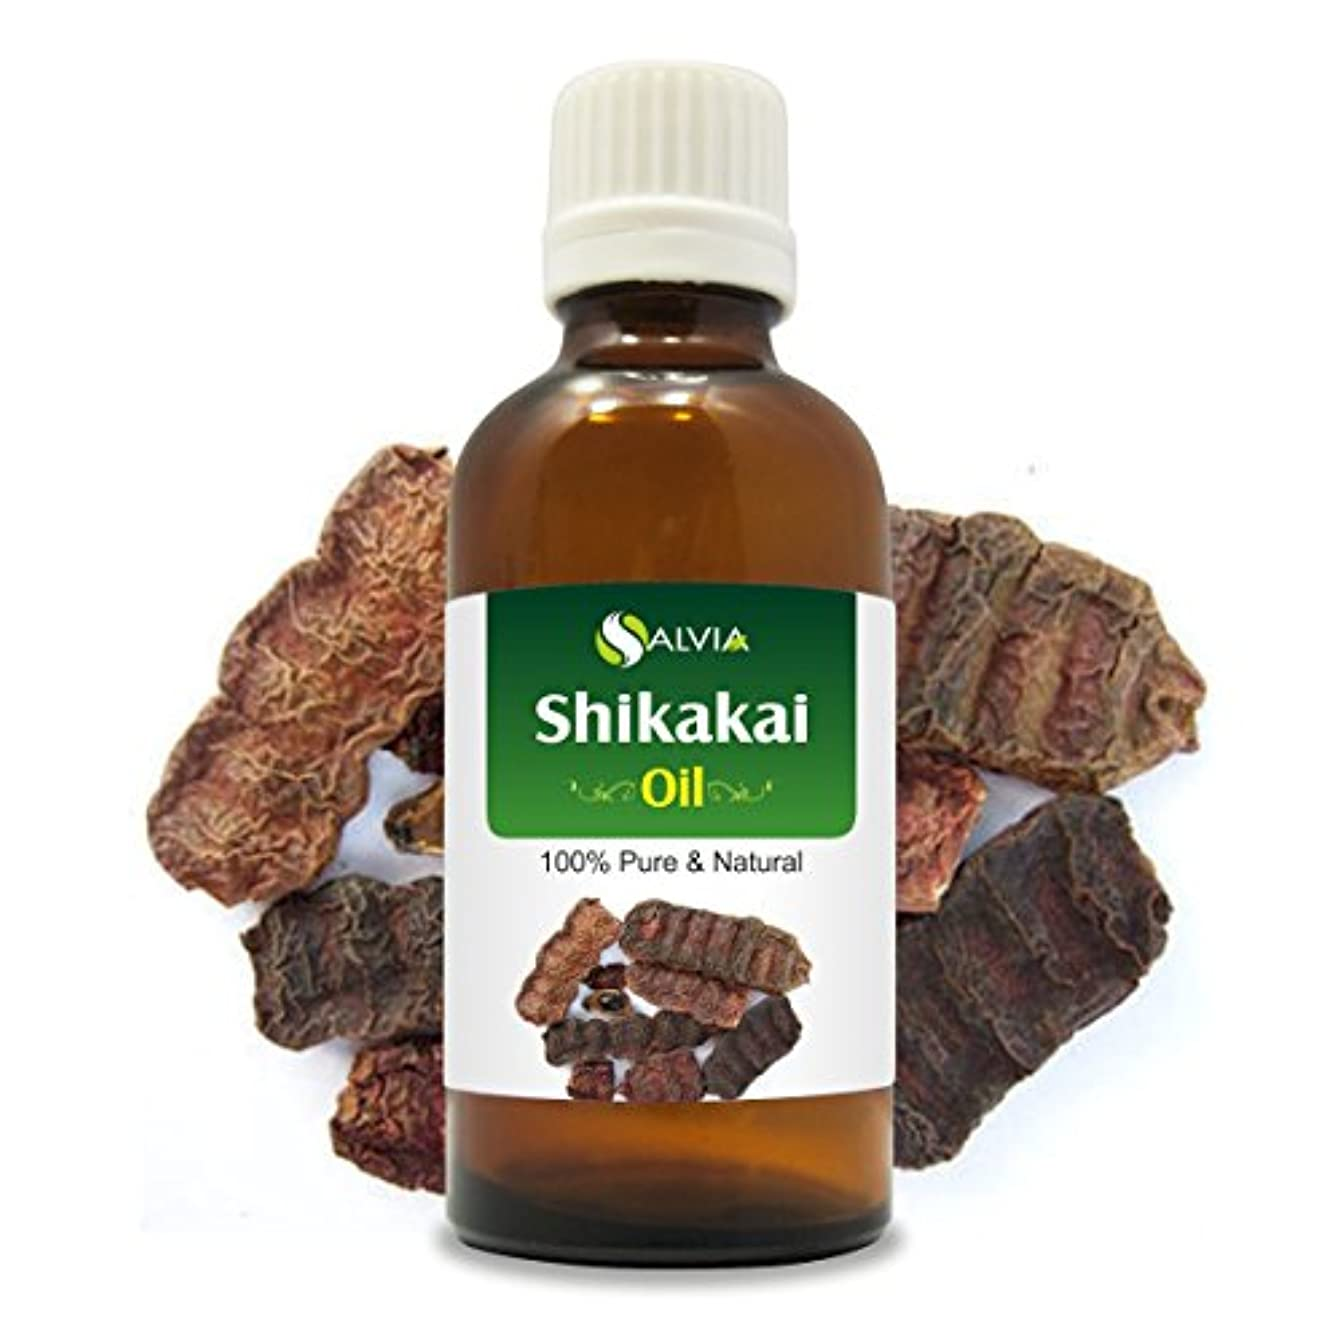 SHIKAKAI OIL 100% NATURAL PURE UNDILUTED UNCUT OIL 100ML